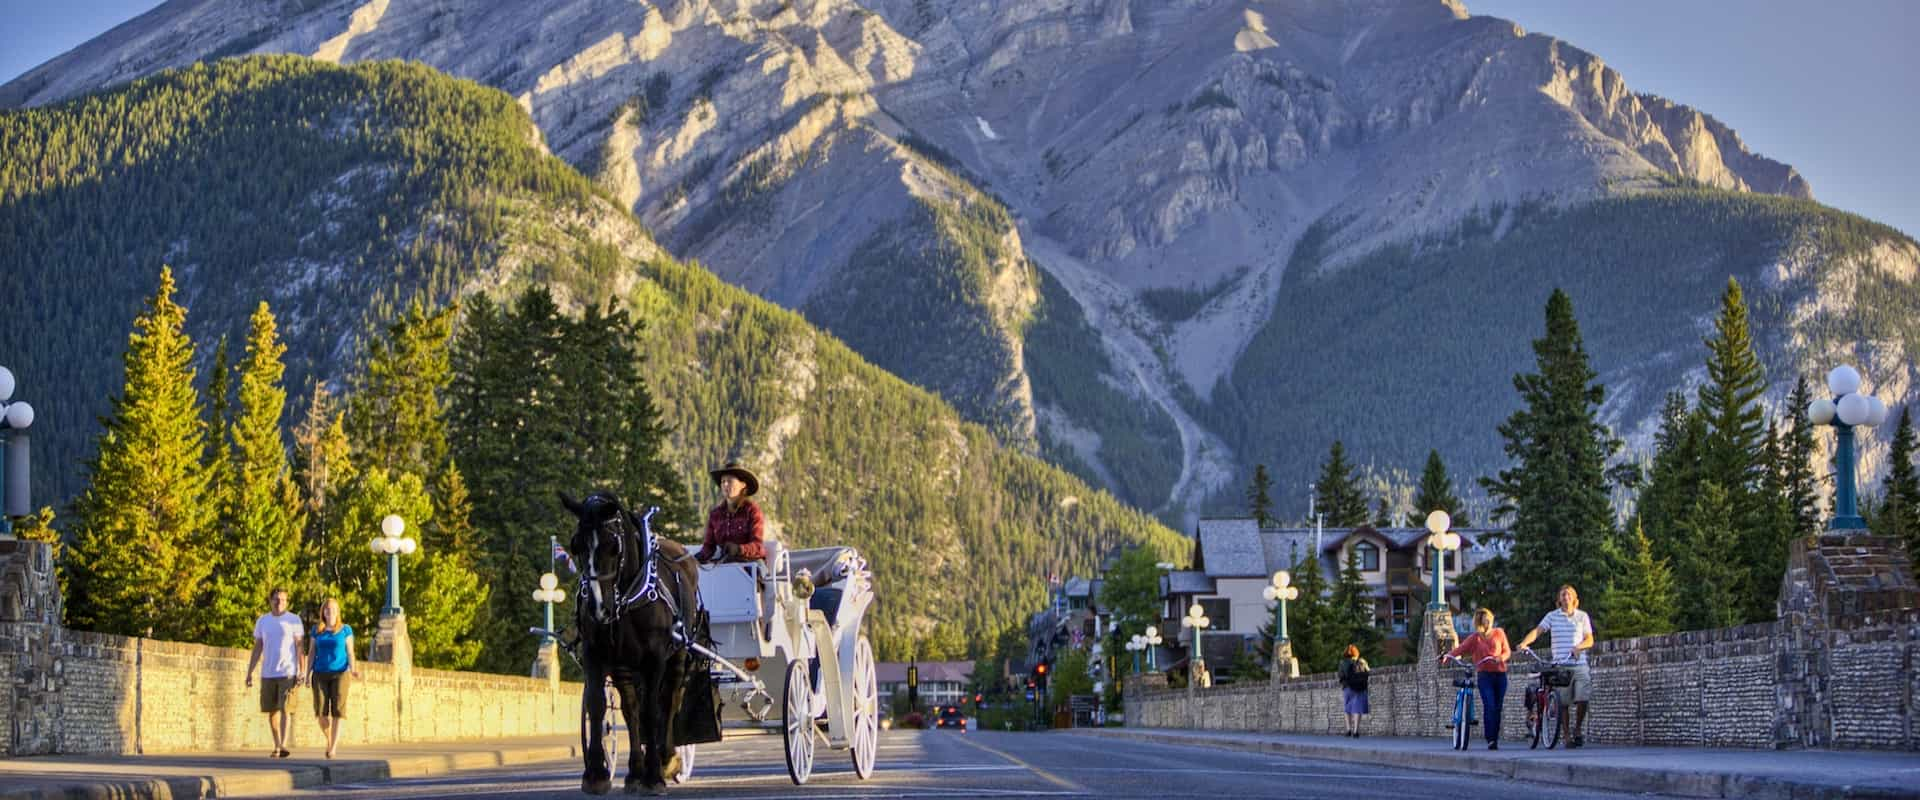 Carriage Ride on Banff Ave